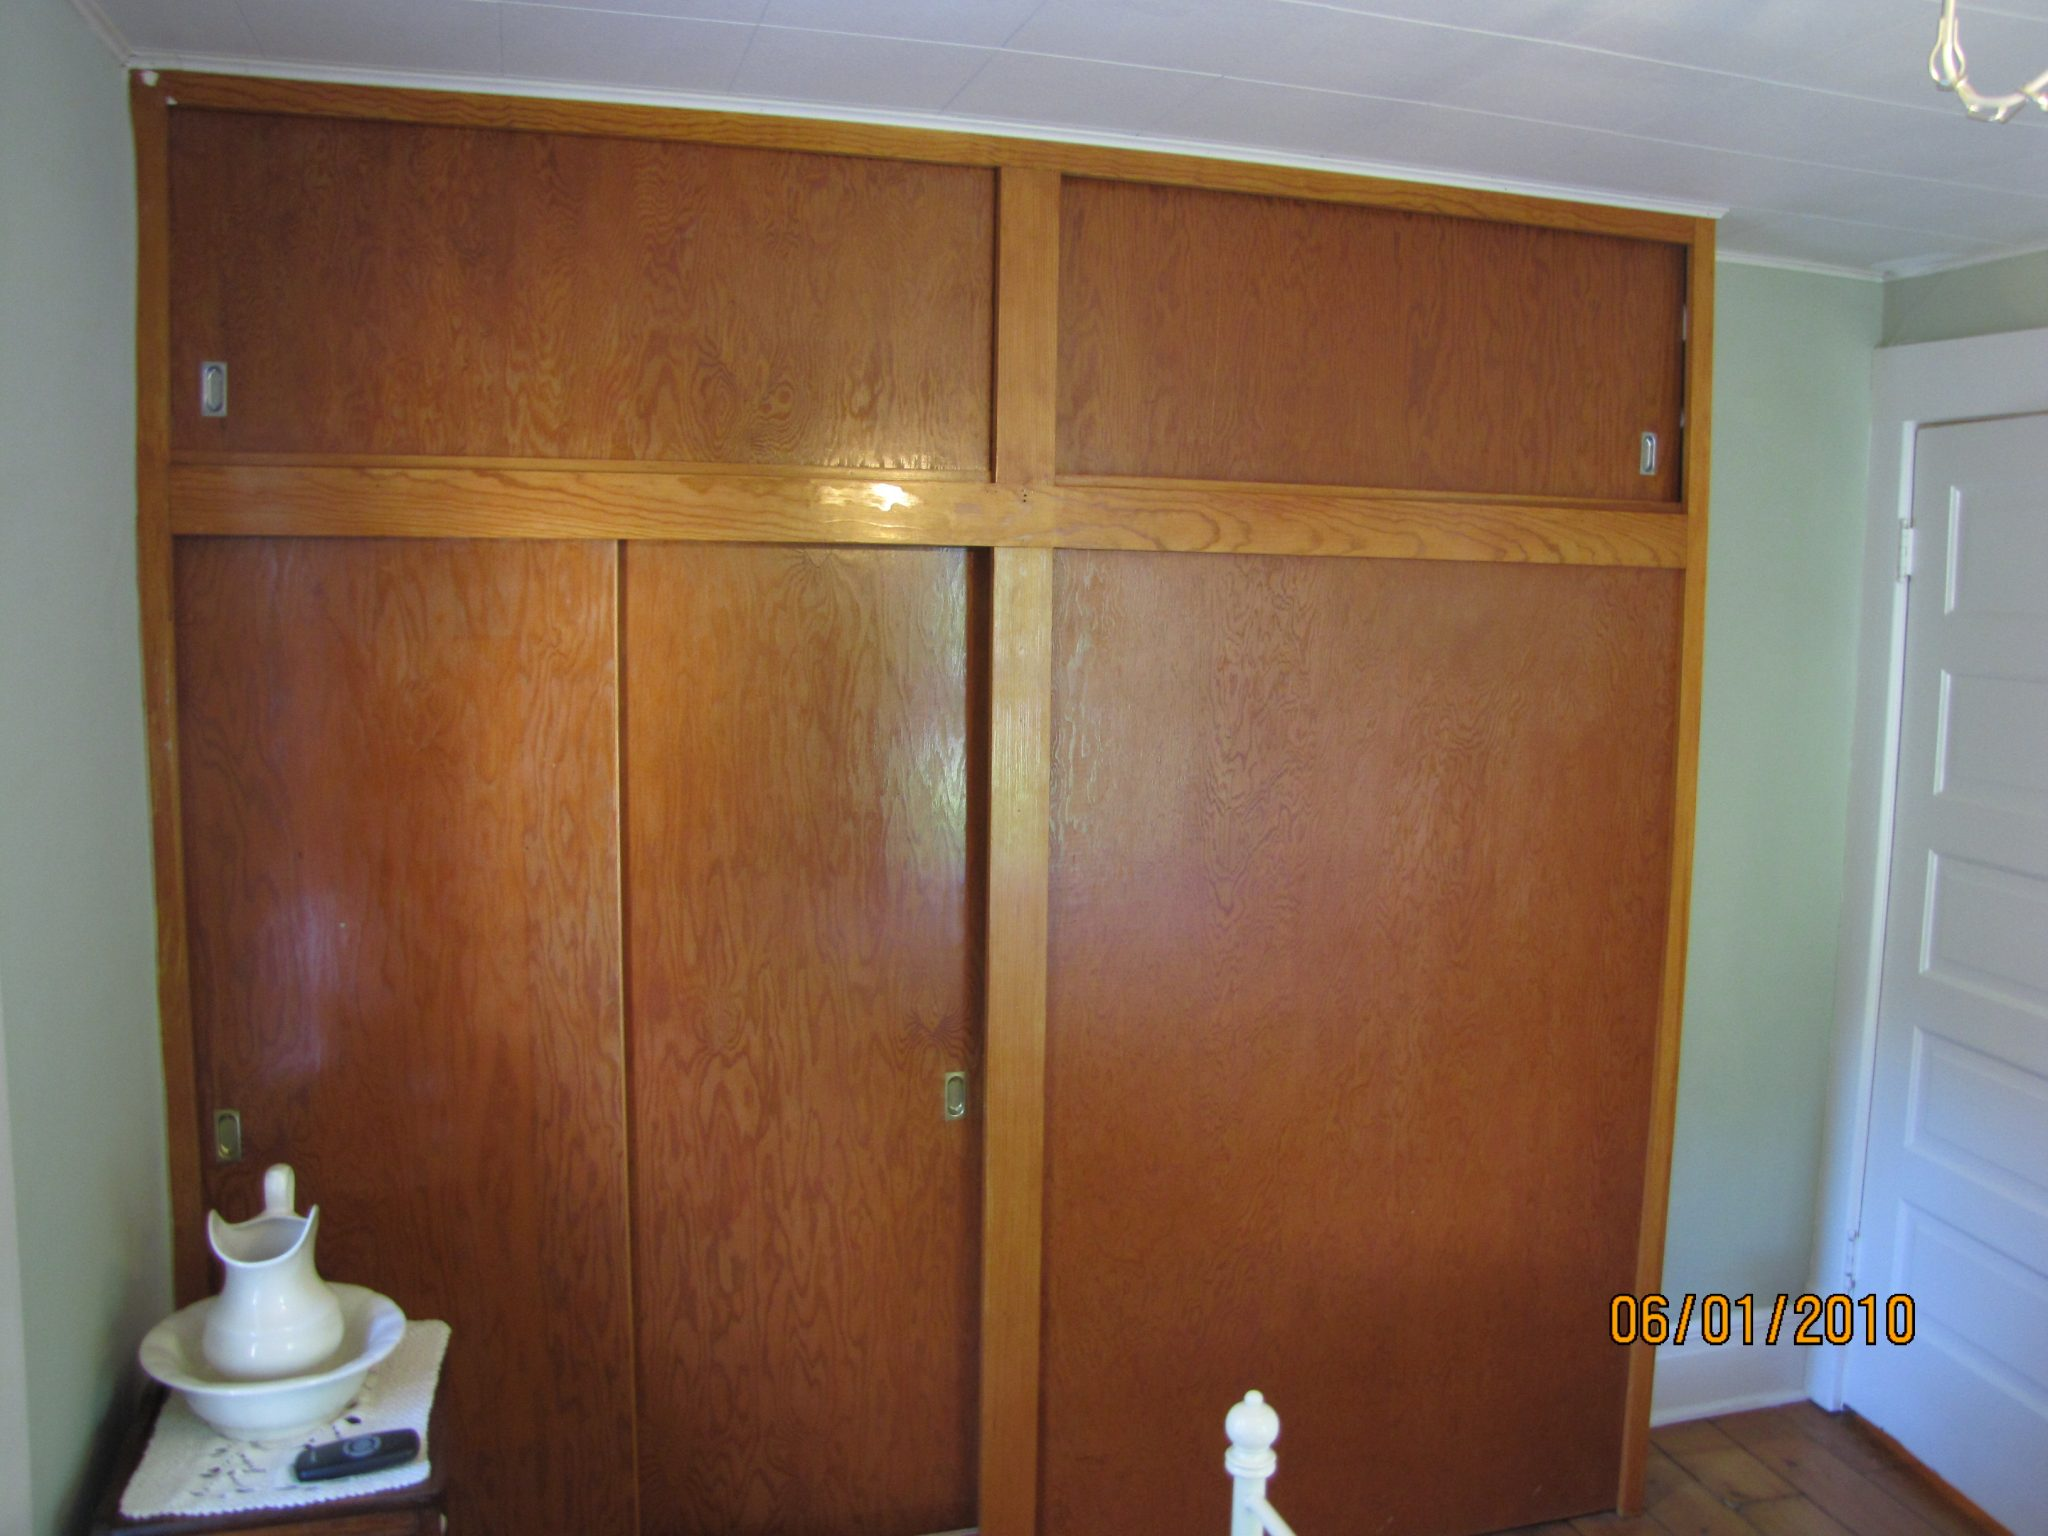 II Int-83 (Master&guest BR wall removal & closet addition) via @myoldhousefix